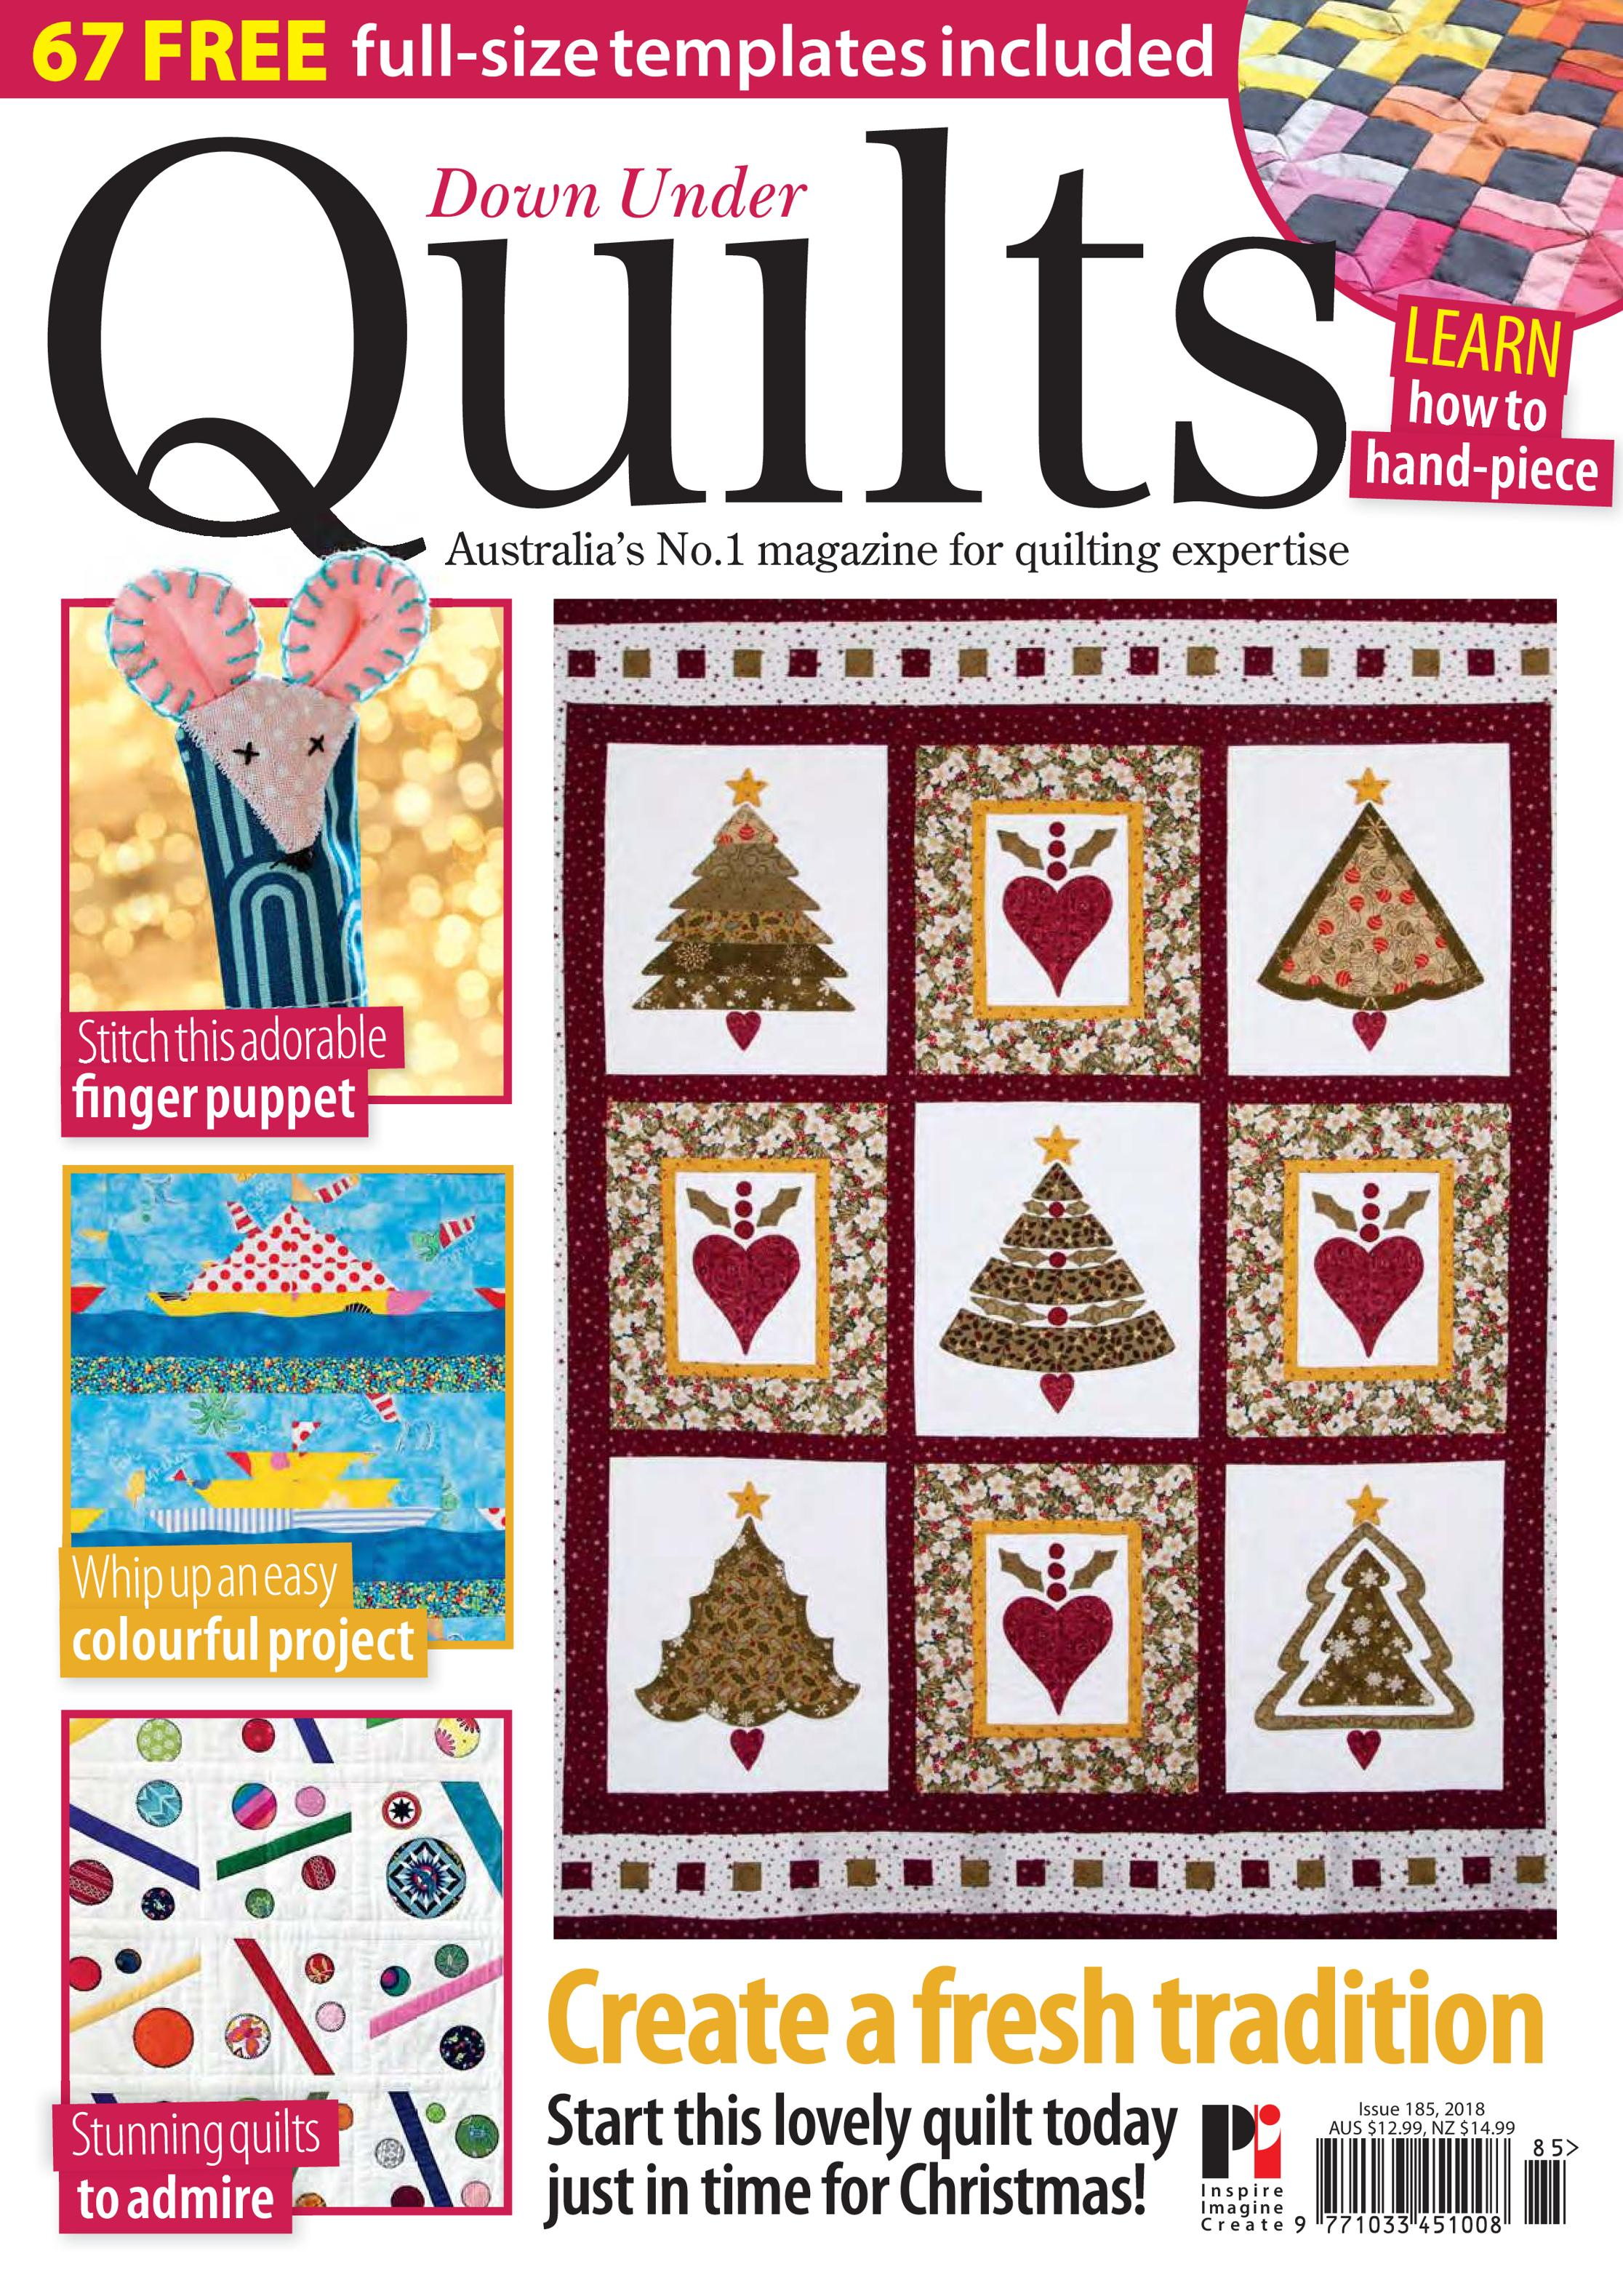 Down Under Quilts – January 2019